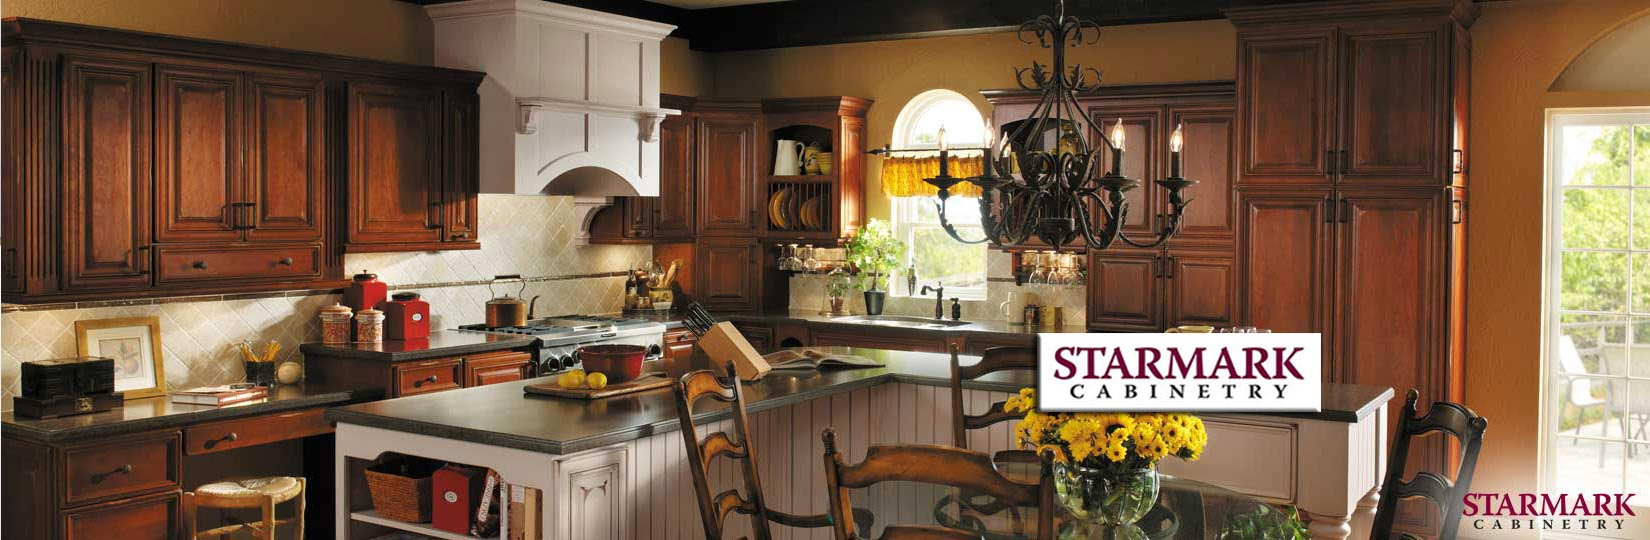 starmark cabinetry new kitchen remodel